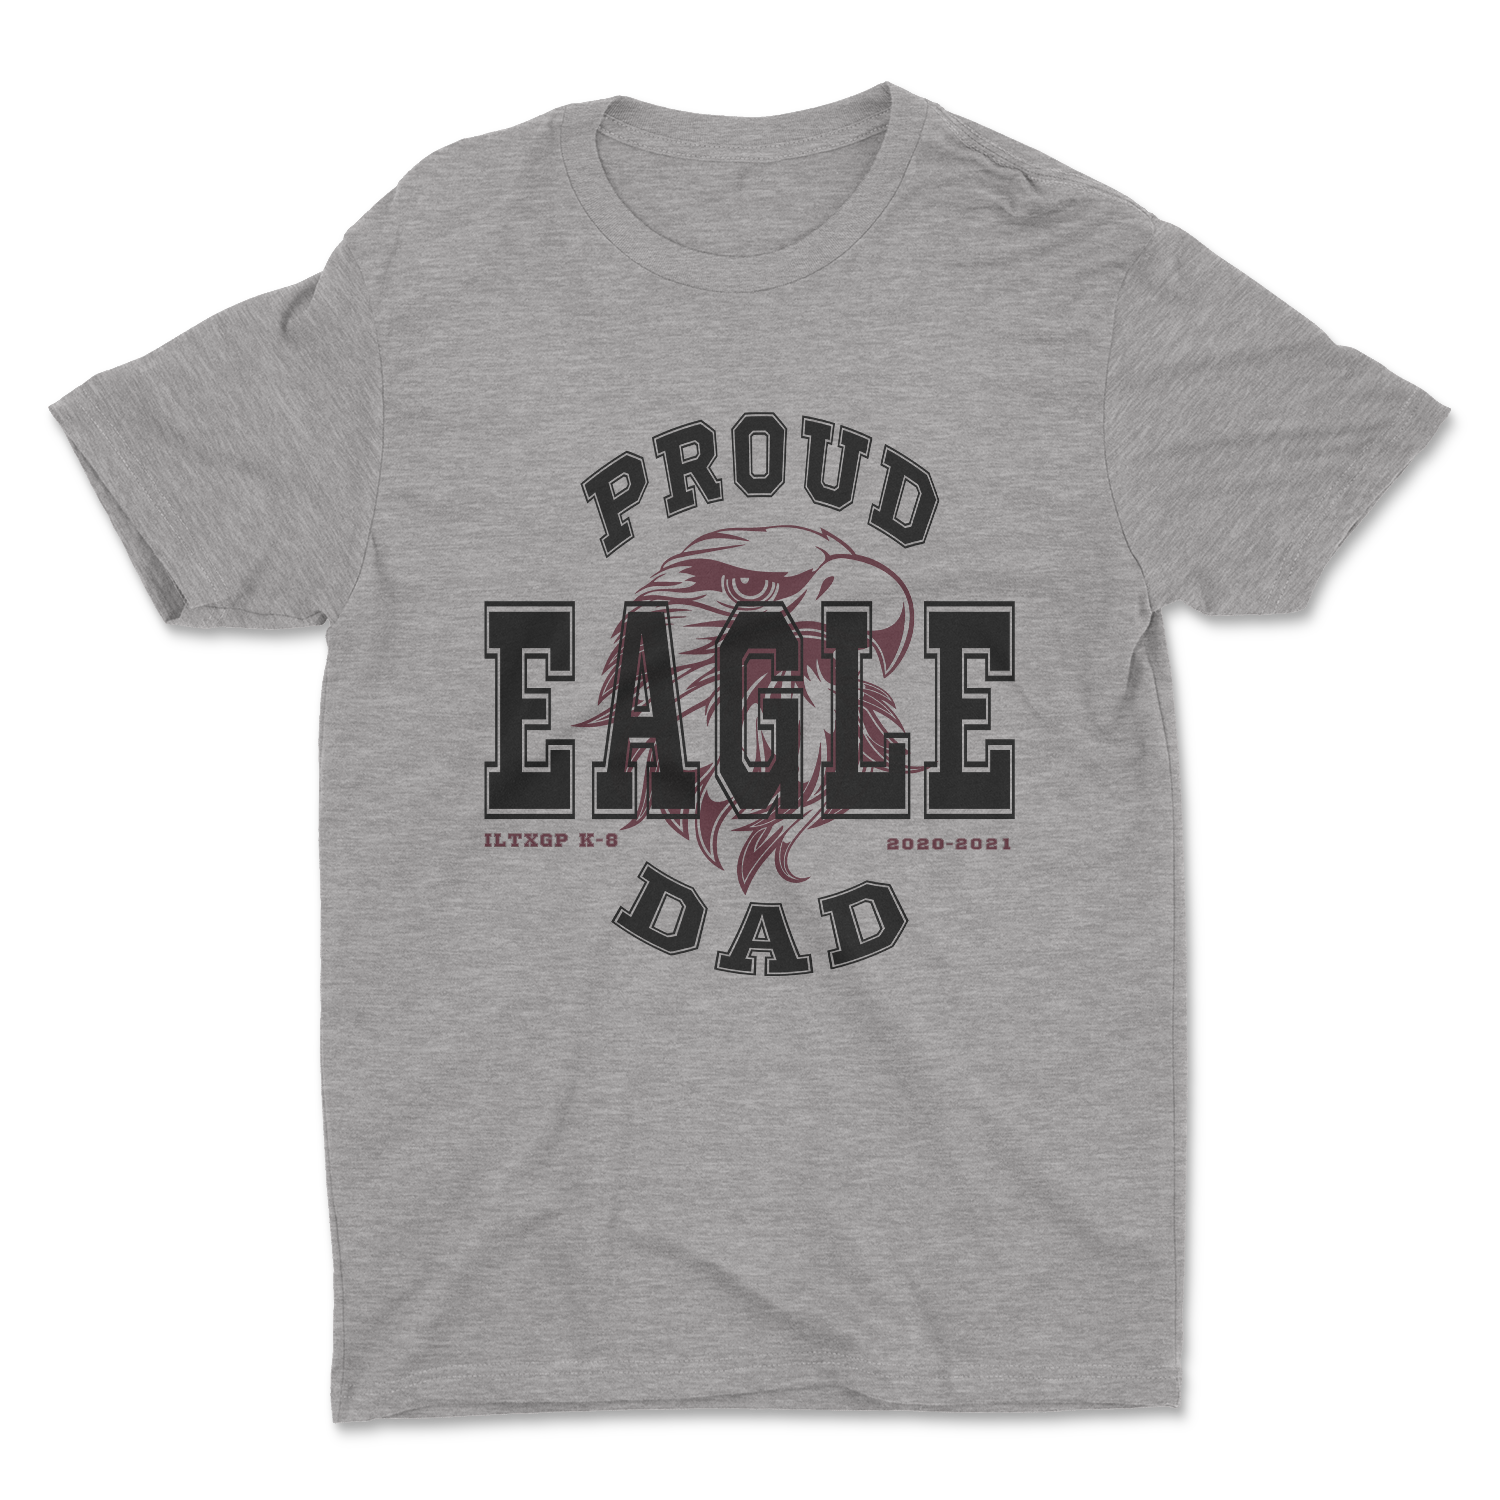 Proud Eagle PTO Dad Heather Grey Shirt - Adult Unisex